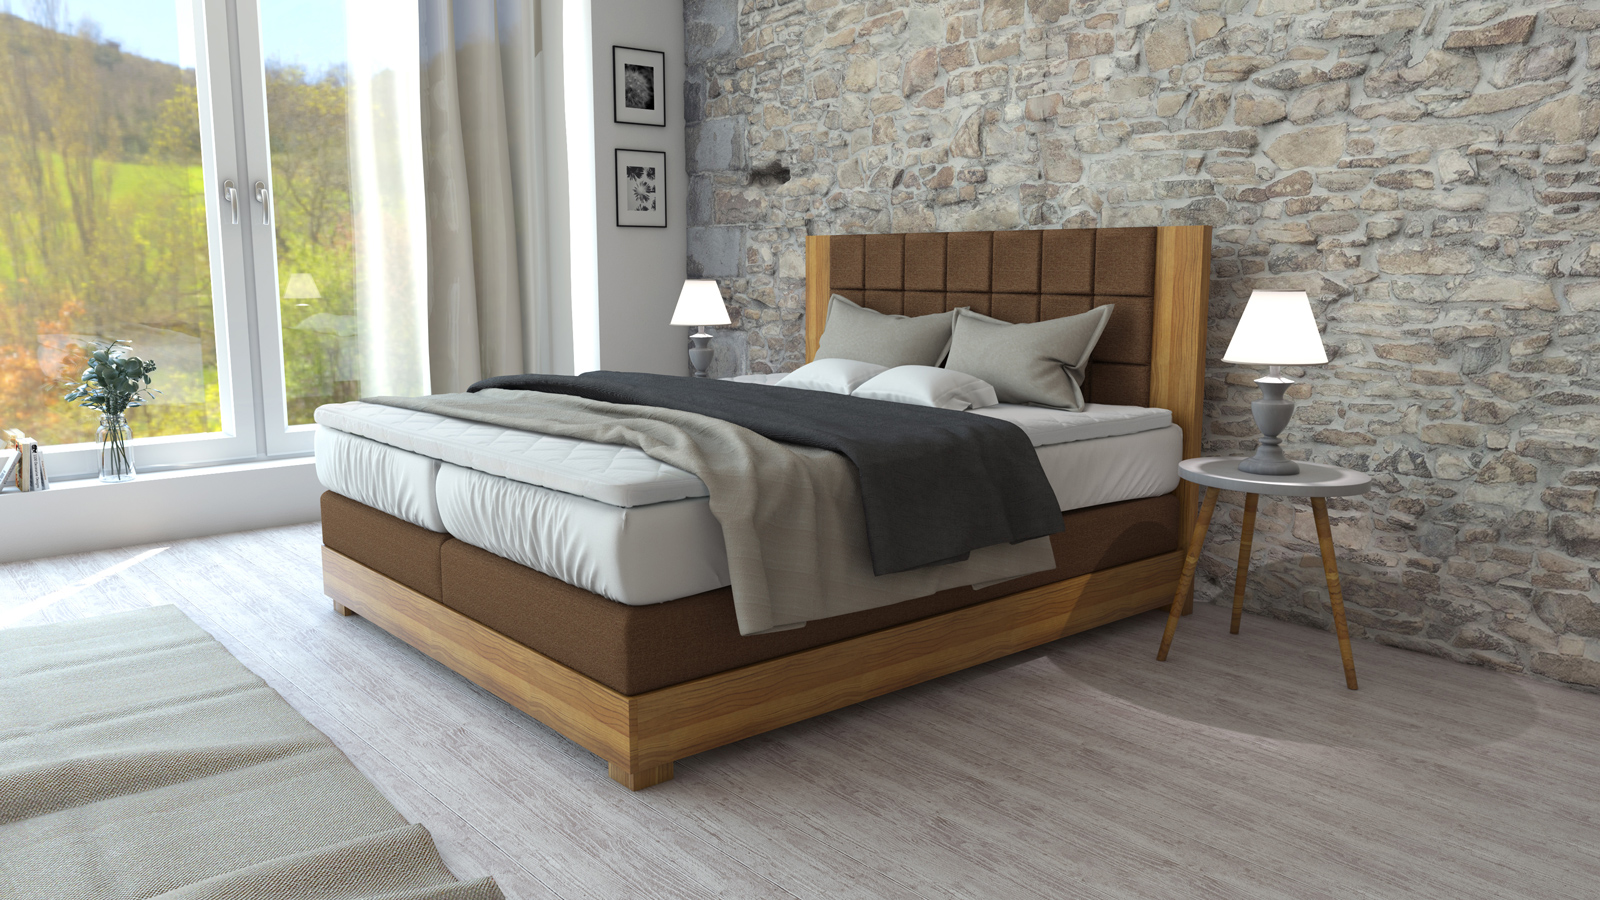 sam boxspringbett eichenholz stoffbezug braun 180 x 200 cm tiwood demn chst. Black Bedroom Furniture Sets. Home Design Ideas